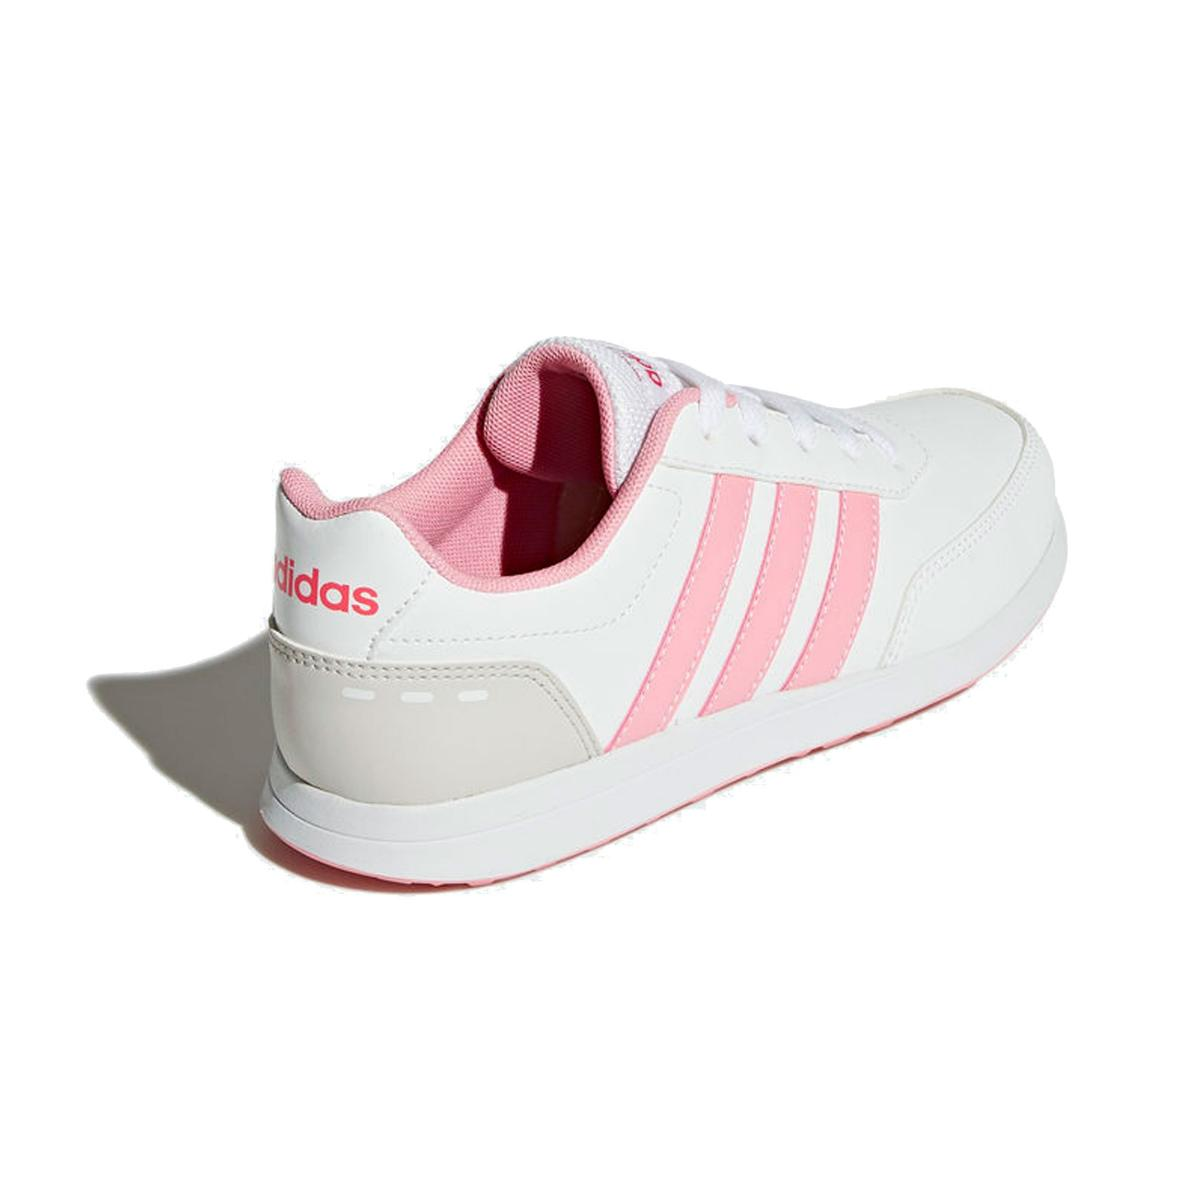 Scarpe Sneakers Adidas VS SWITCH 2 K da ragazza rif.BC0091